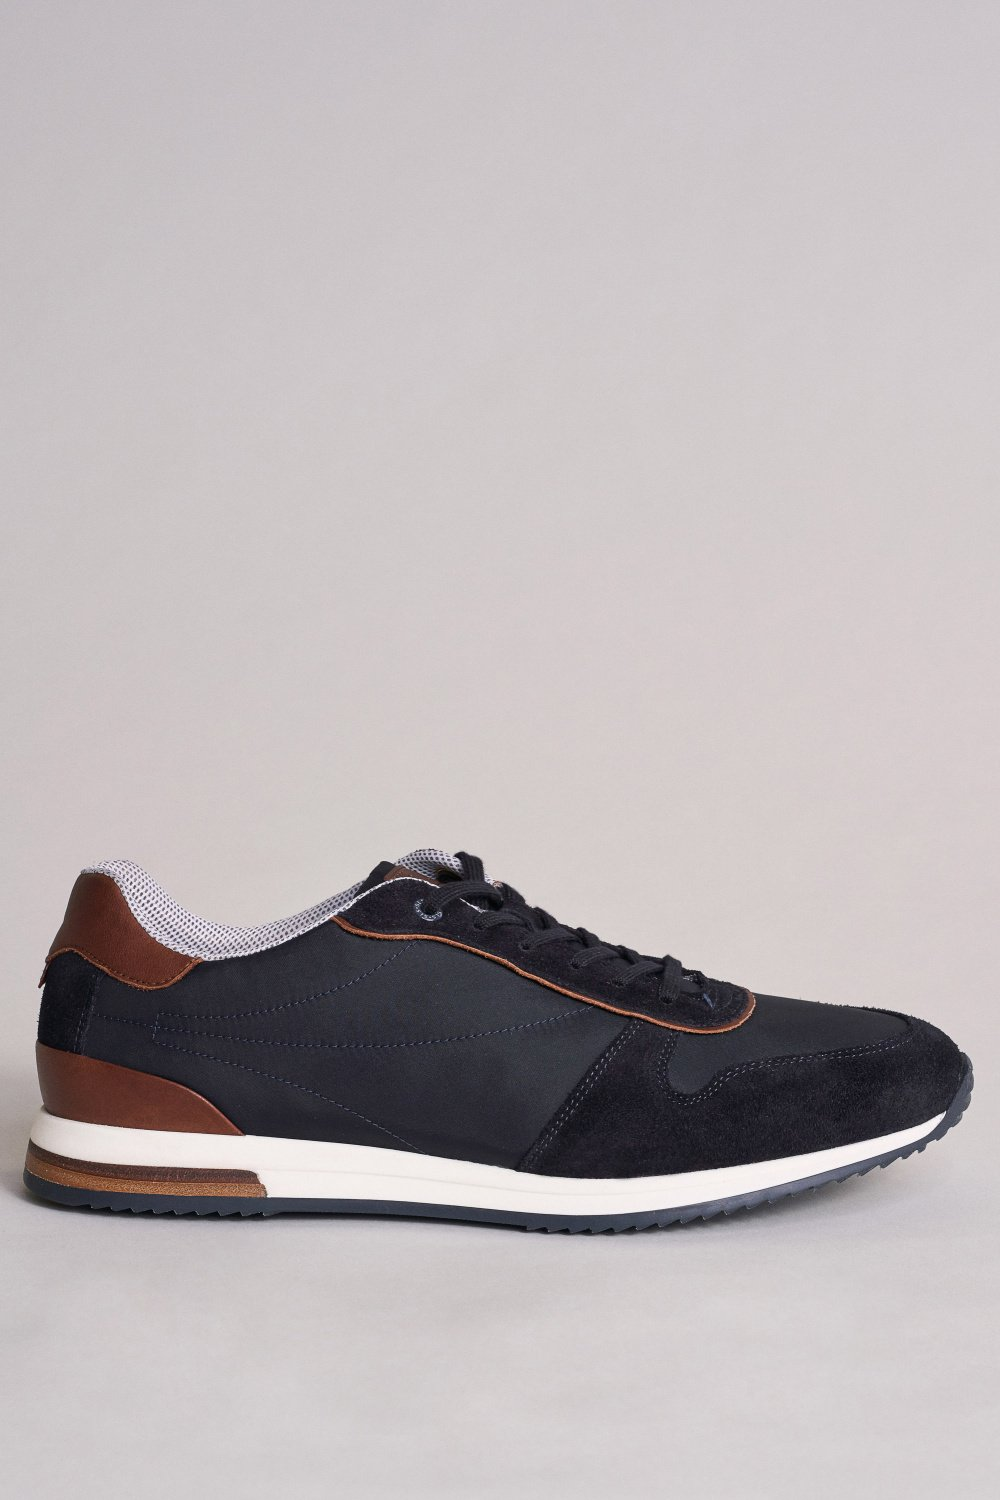 Suede trainers with leather inserts - Salsa